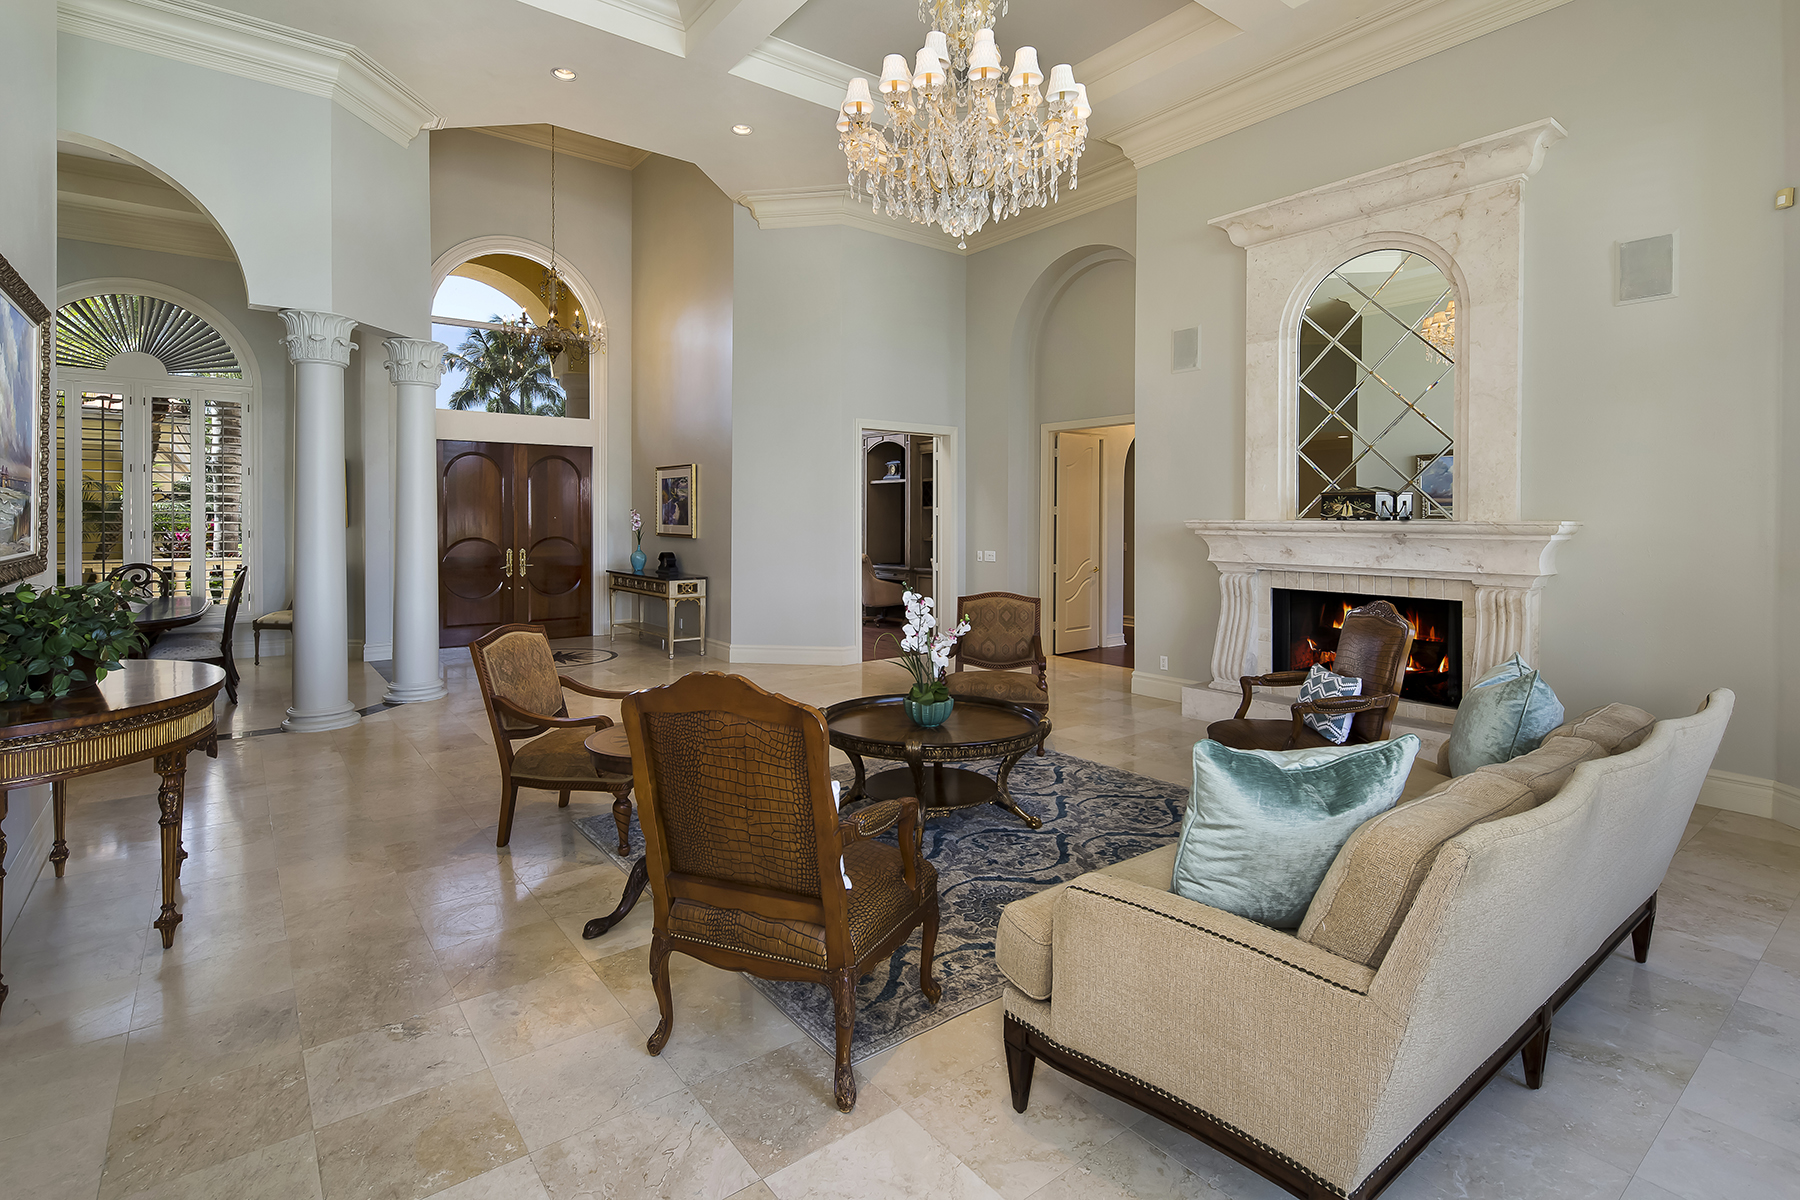 Additional photo for property listing at Naples 4223  Cutlass Ln,  Naples, Florida 34102 United States